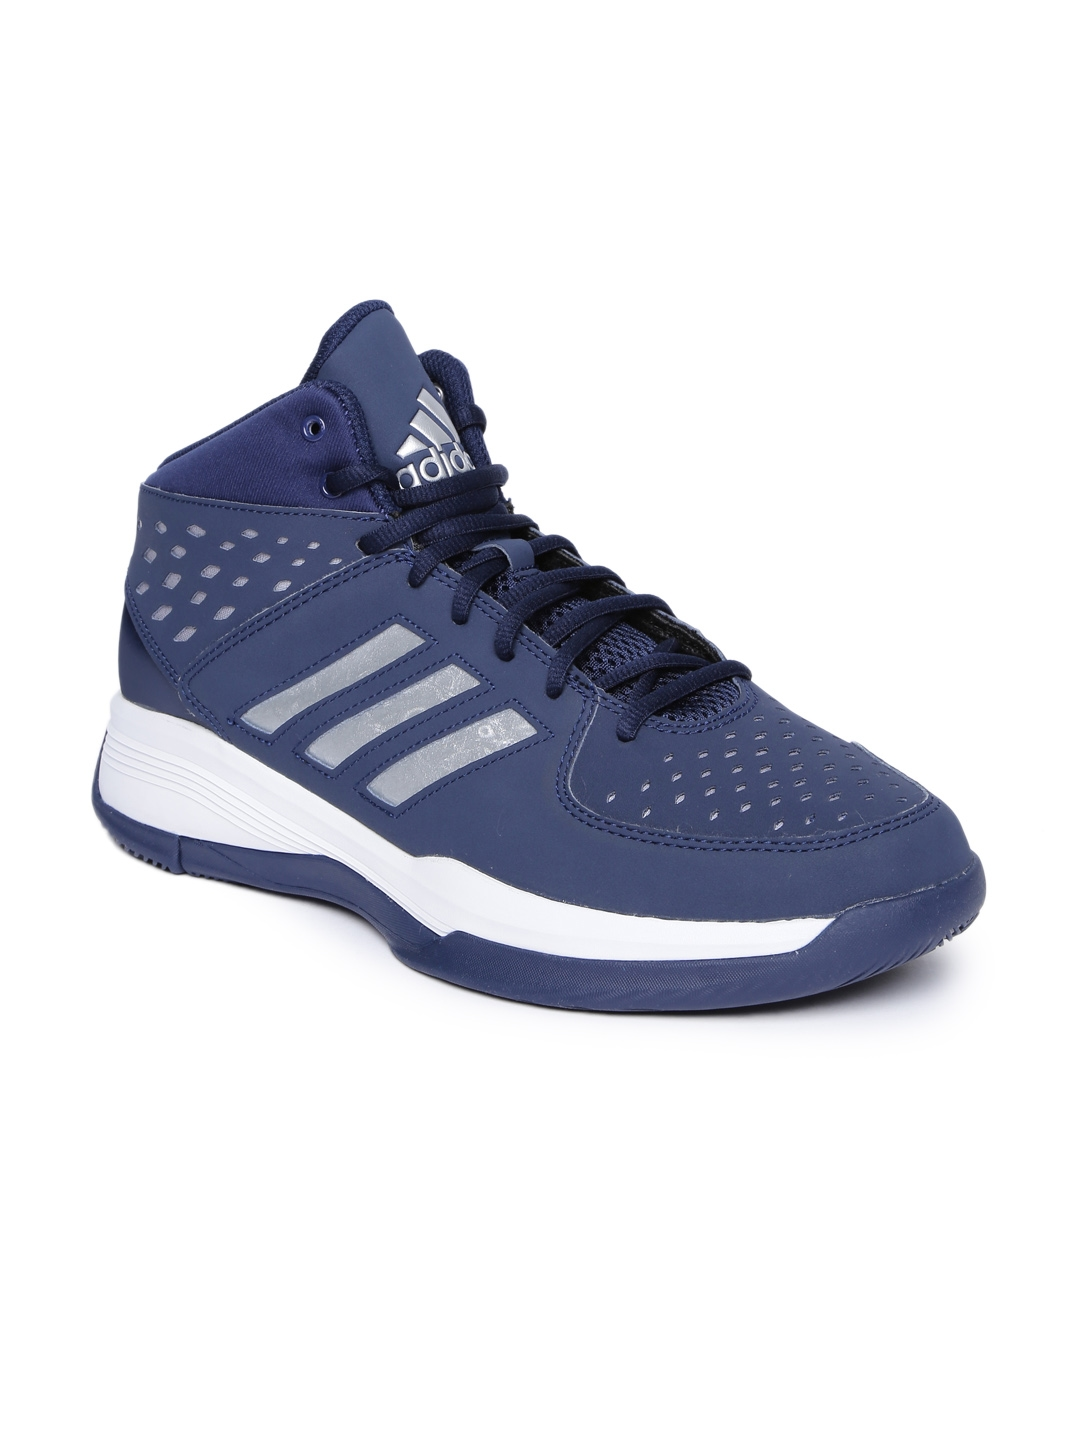 5f5ccc3f3ed4 ADIDAS Men Navy COURT FURY Mid-Top Basketball Shoes